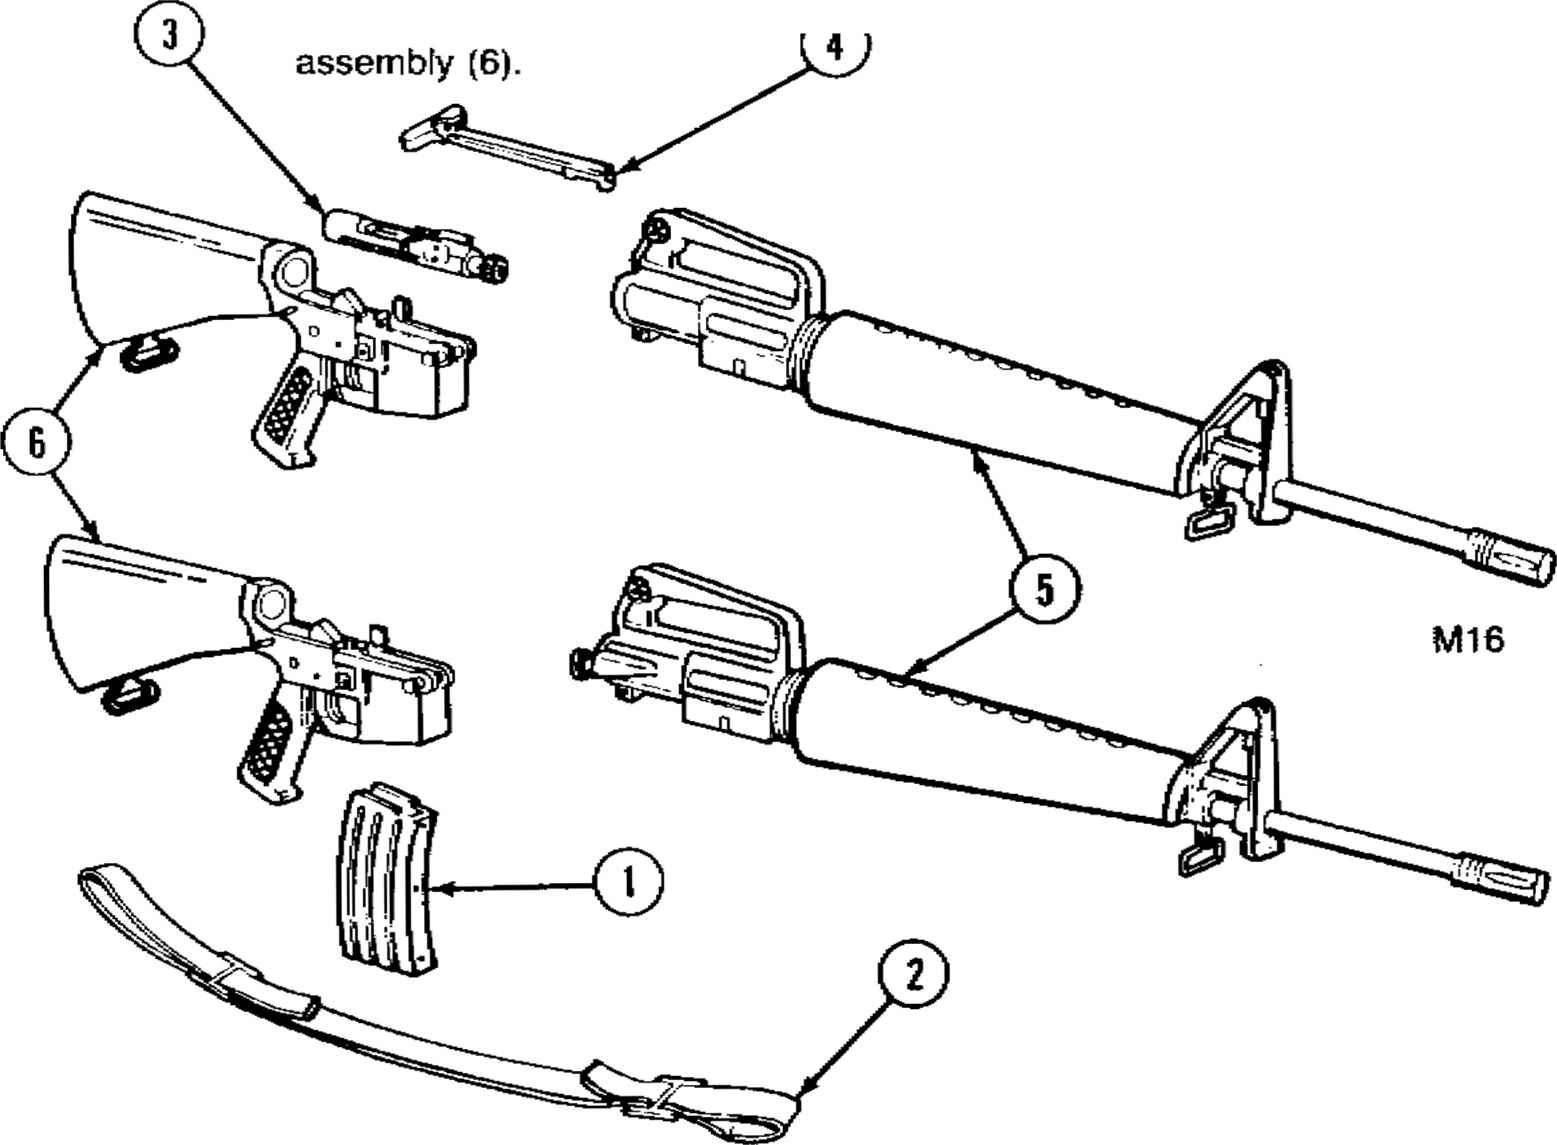 M16 Auto Sear Diagram Diagrams Wiring Diagram Images